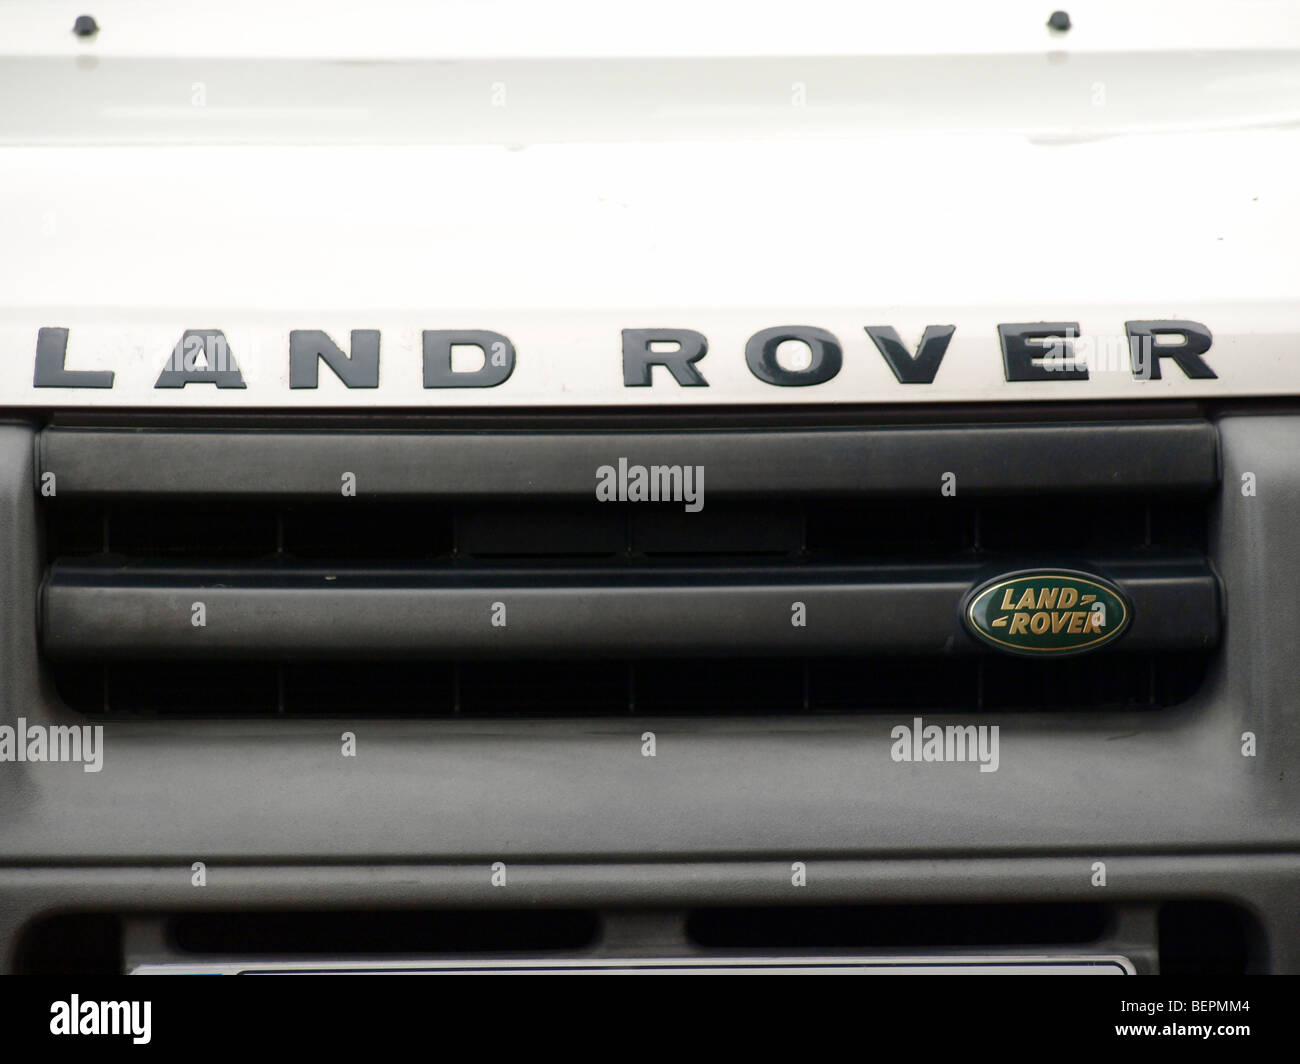 The front of a Land Rover Freelander. - Stock Image